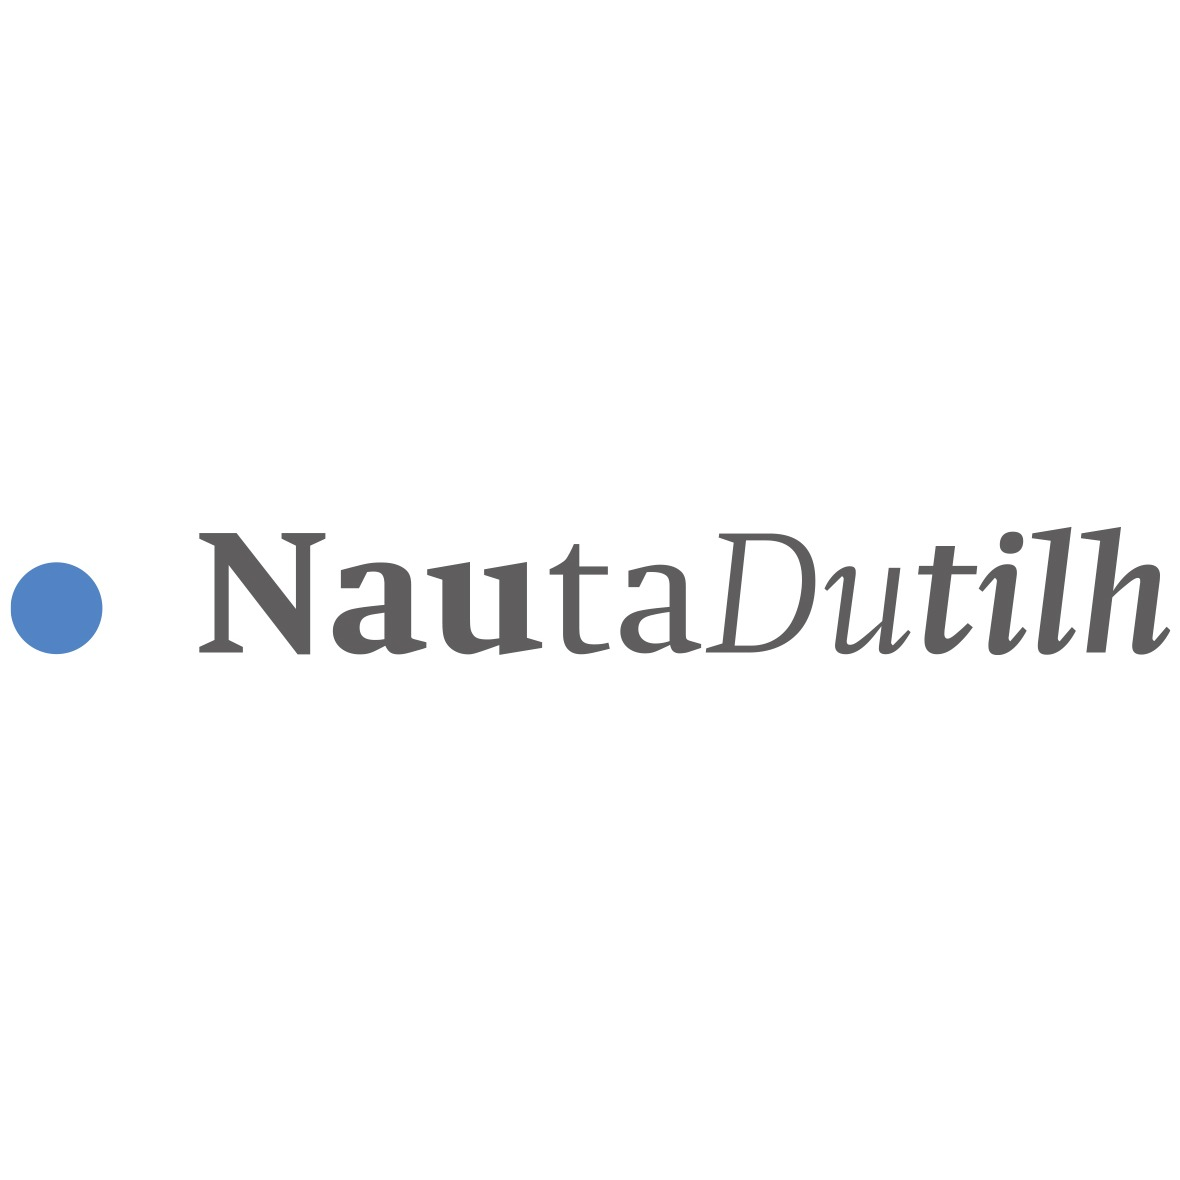 the NautaDutilh logo.